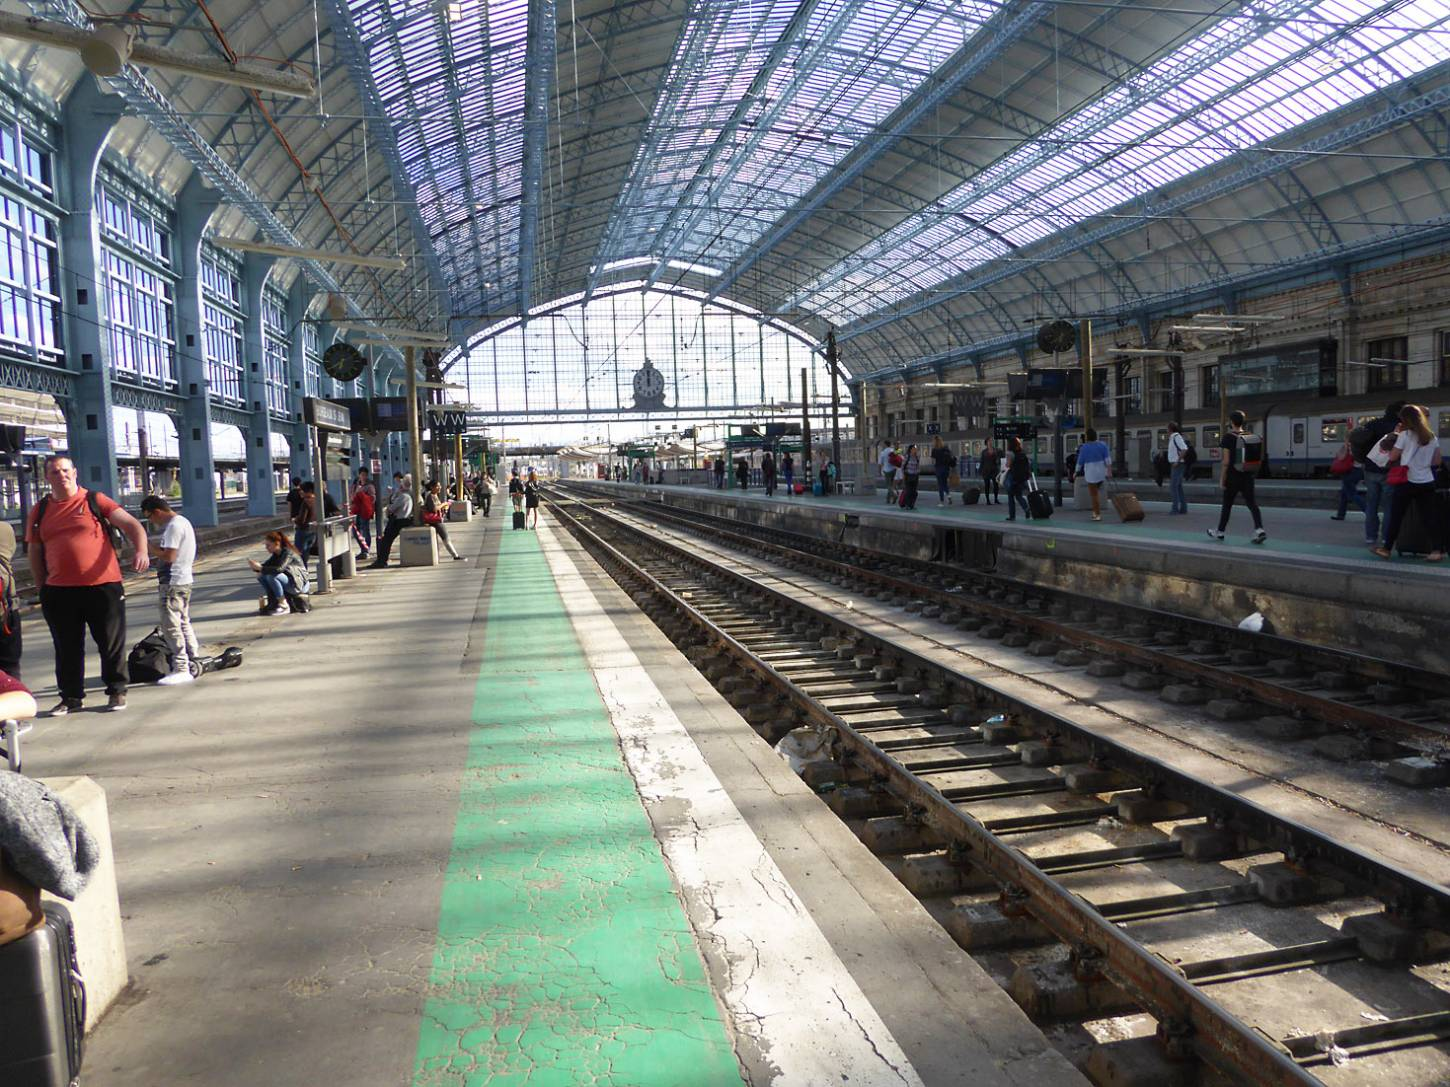 Bordeaux station, France, May '17 - 5:38pm&nbsp;14<sup>th</sup>&nbsp;May.&nbsp;'17